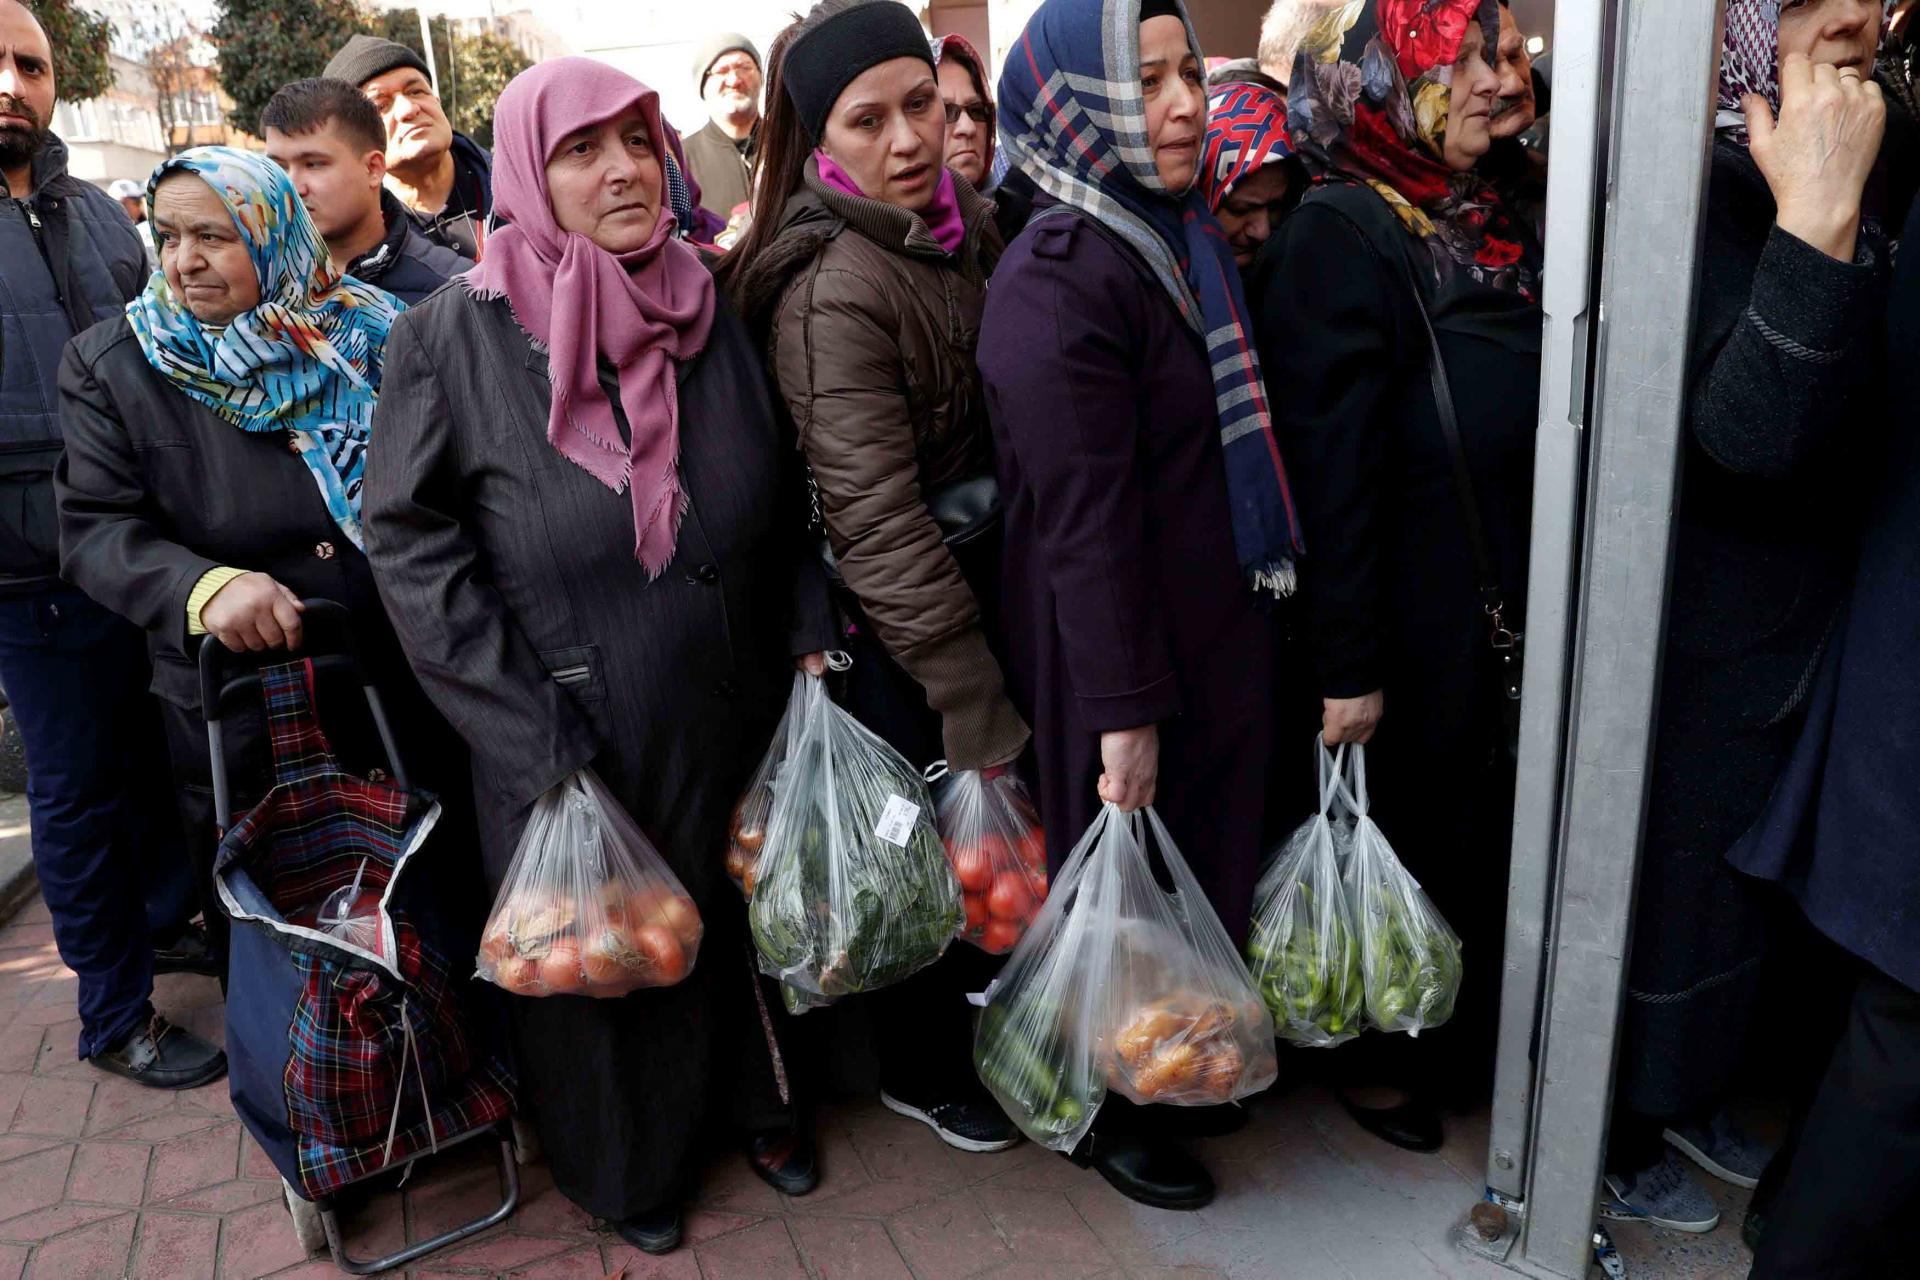 Traders blamed storms in southern Turkey's farming region for food price inflation, as well as rising costs of labour and transport.